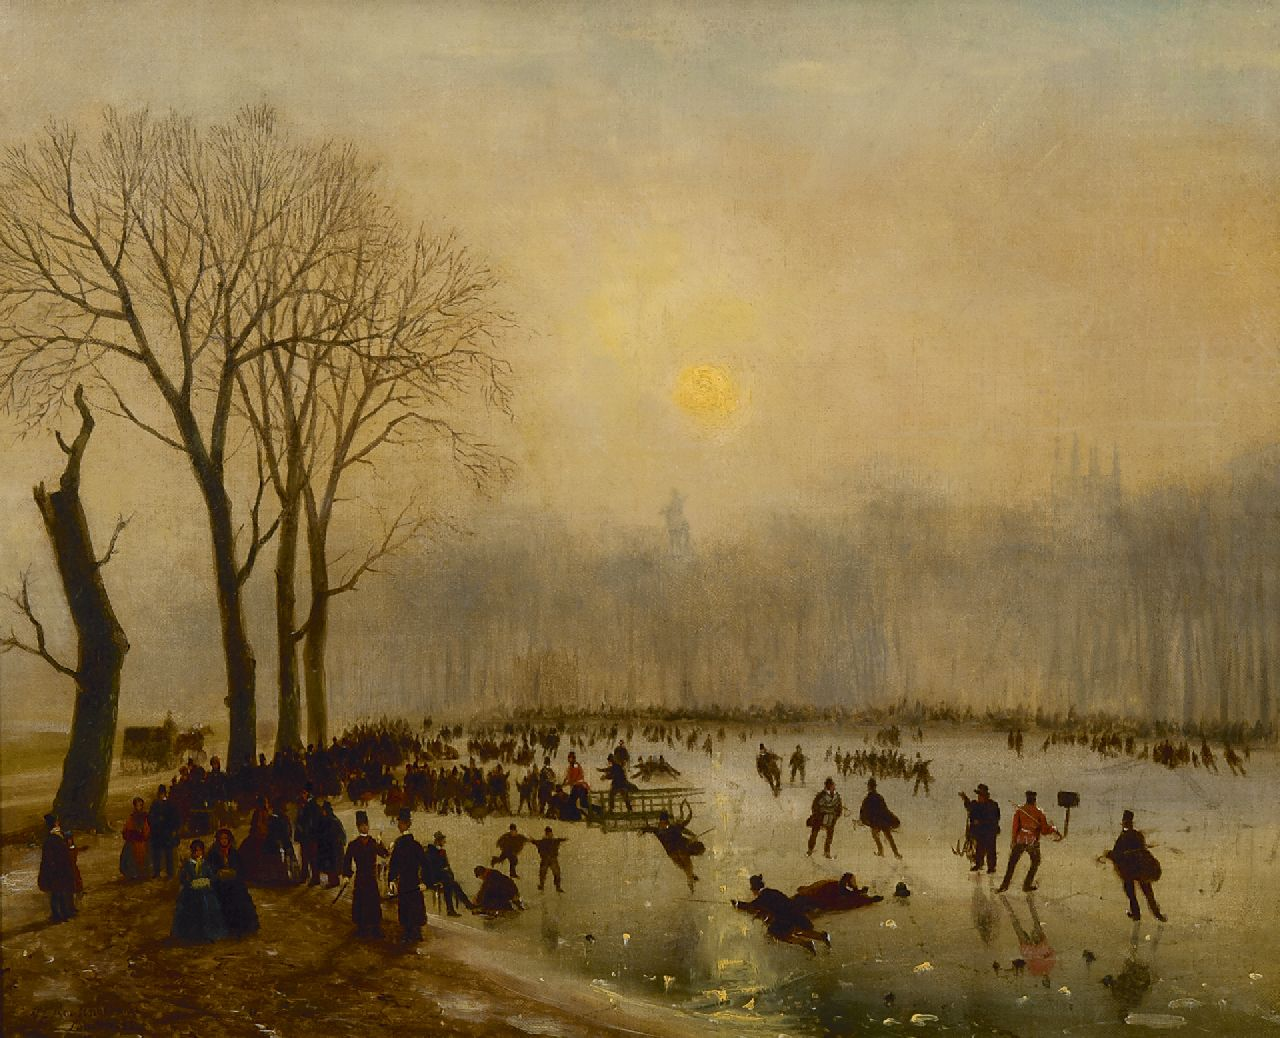 Roosenboom N.J.  | Nicolaas Johannes Roosenboom | Paintings offered for sale | Skating fun on The Serpentine, Hyde Park, oil on canvas 43.3 x 53.7 cm, signed l.l. and dated 'London' '55